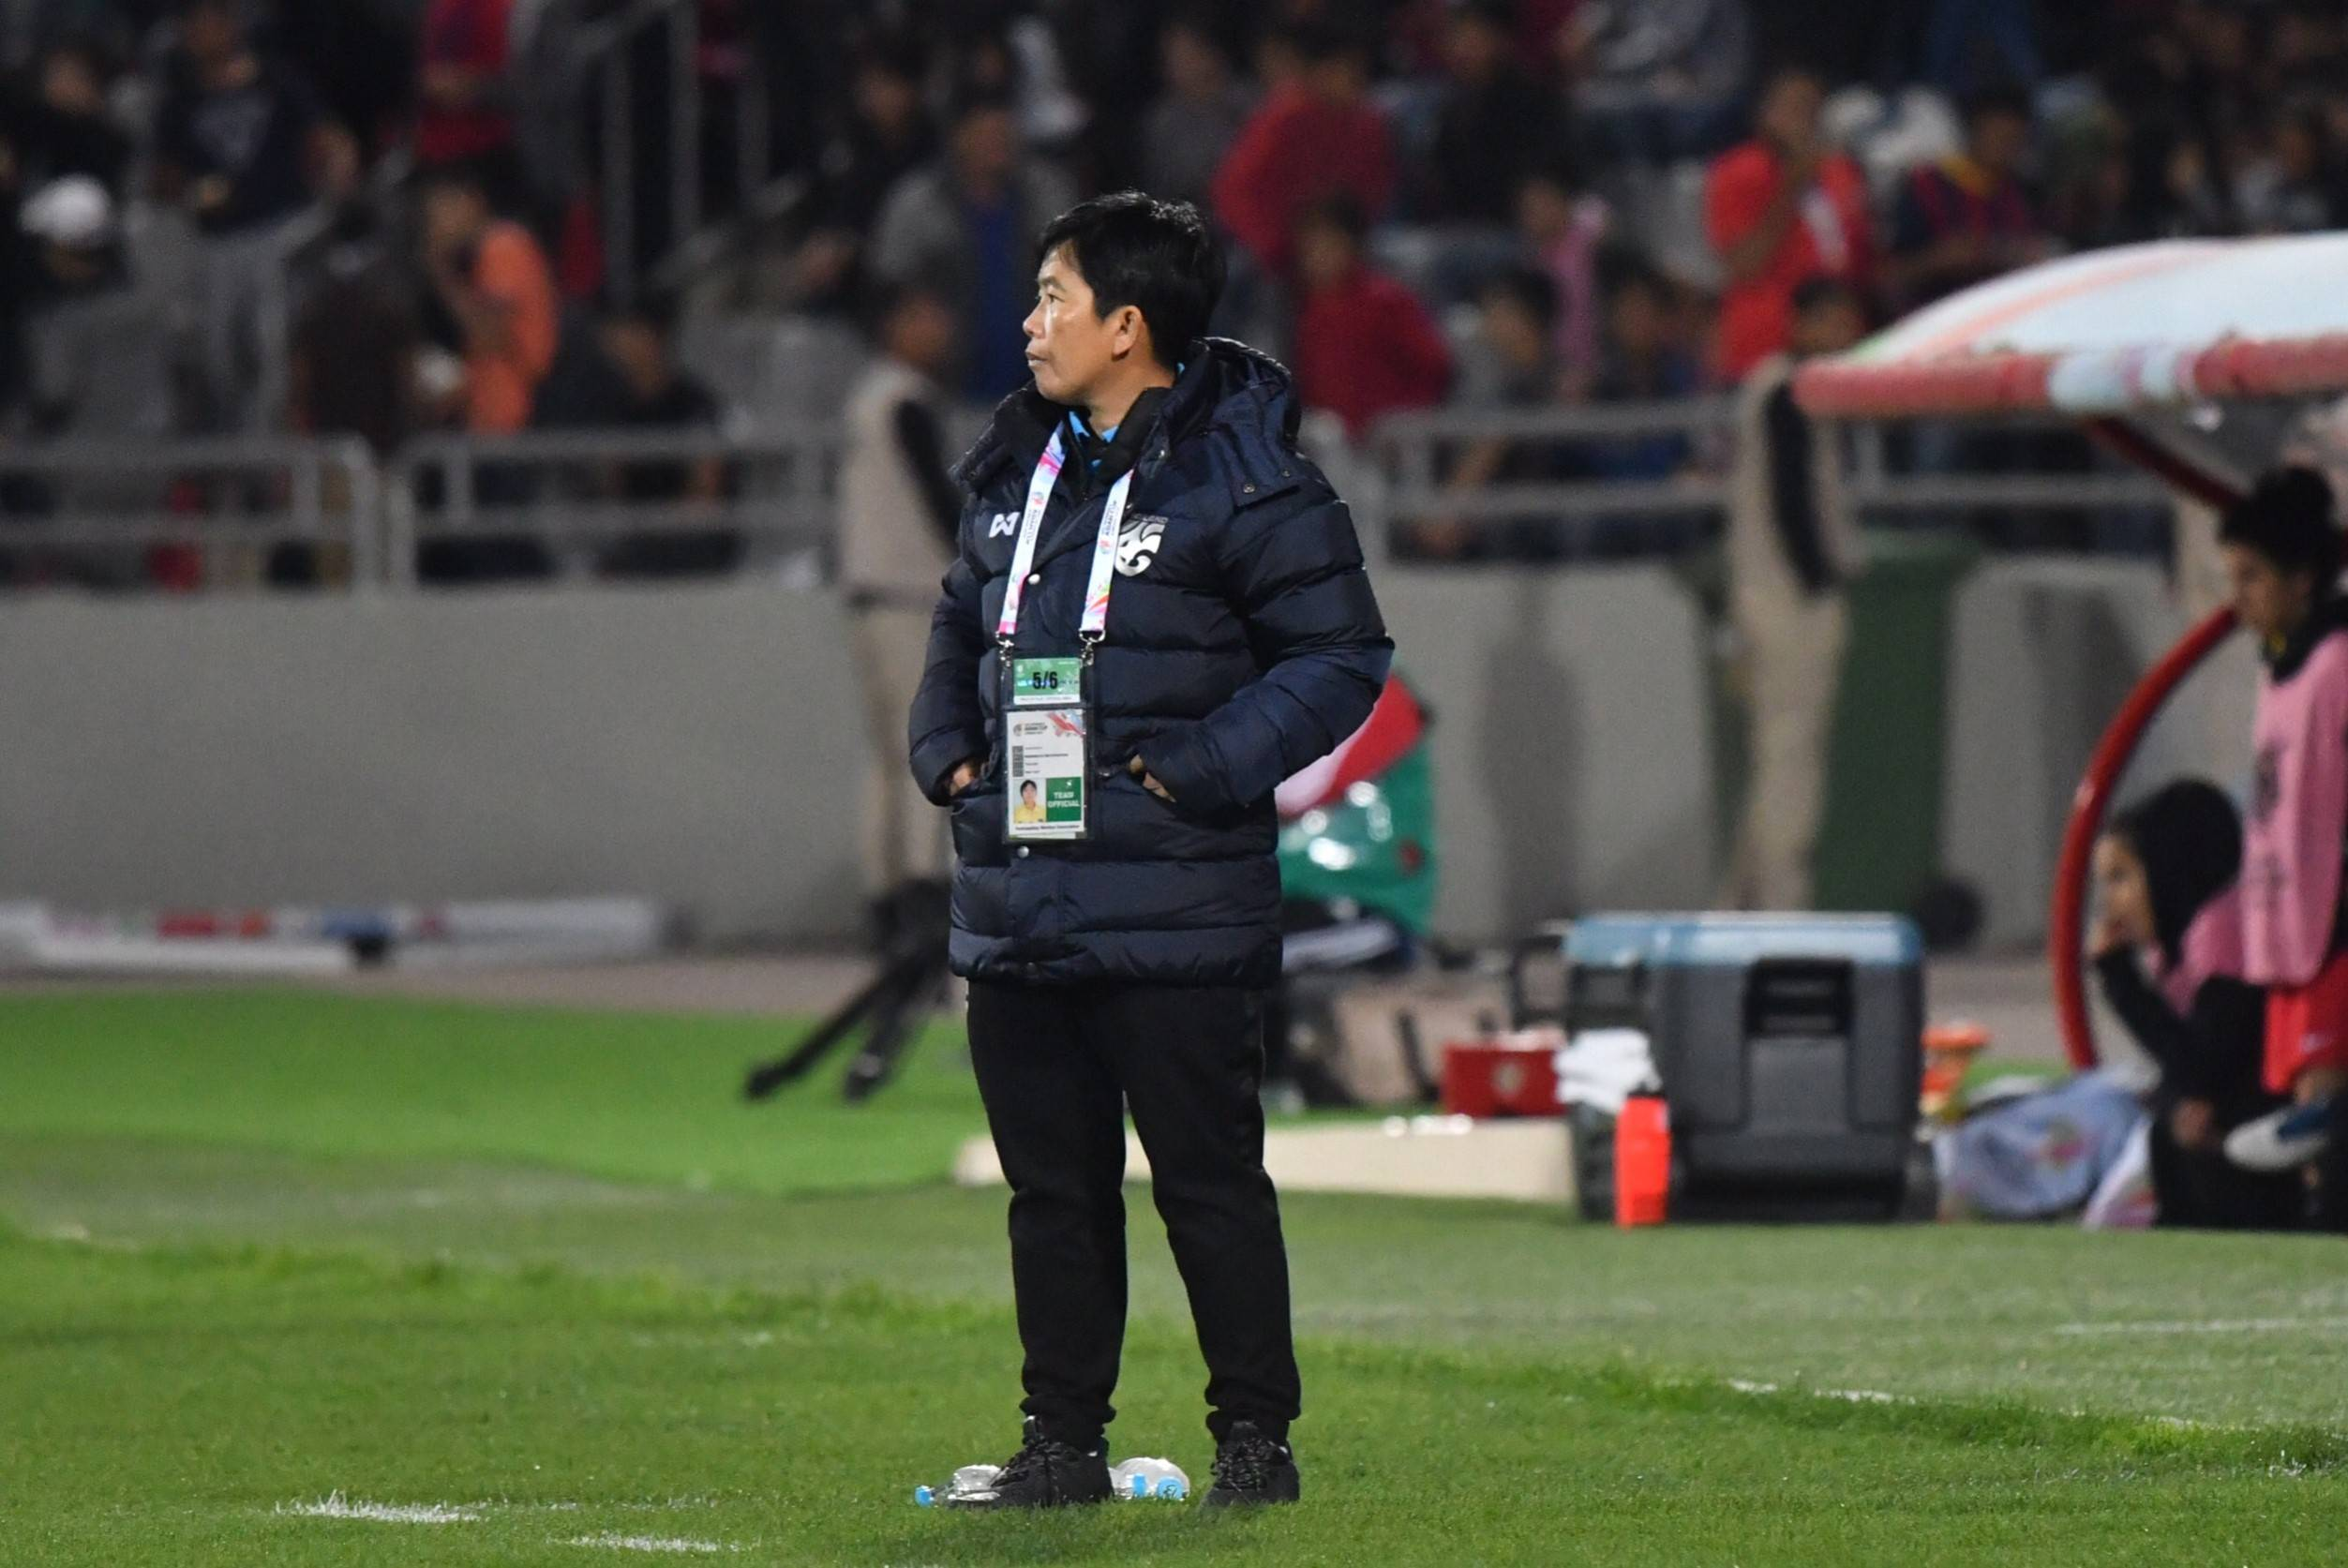 Thailand aim for win over Philippines to earn direct ticket to 2019 FIFA Women's World Cup